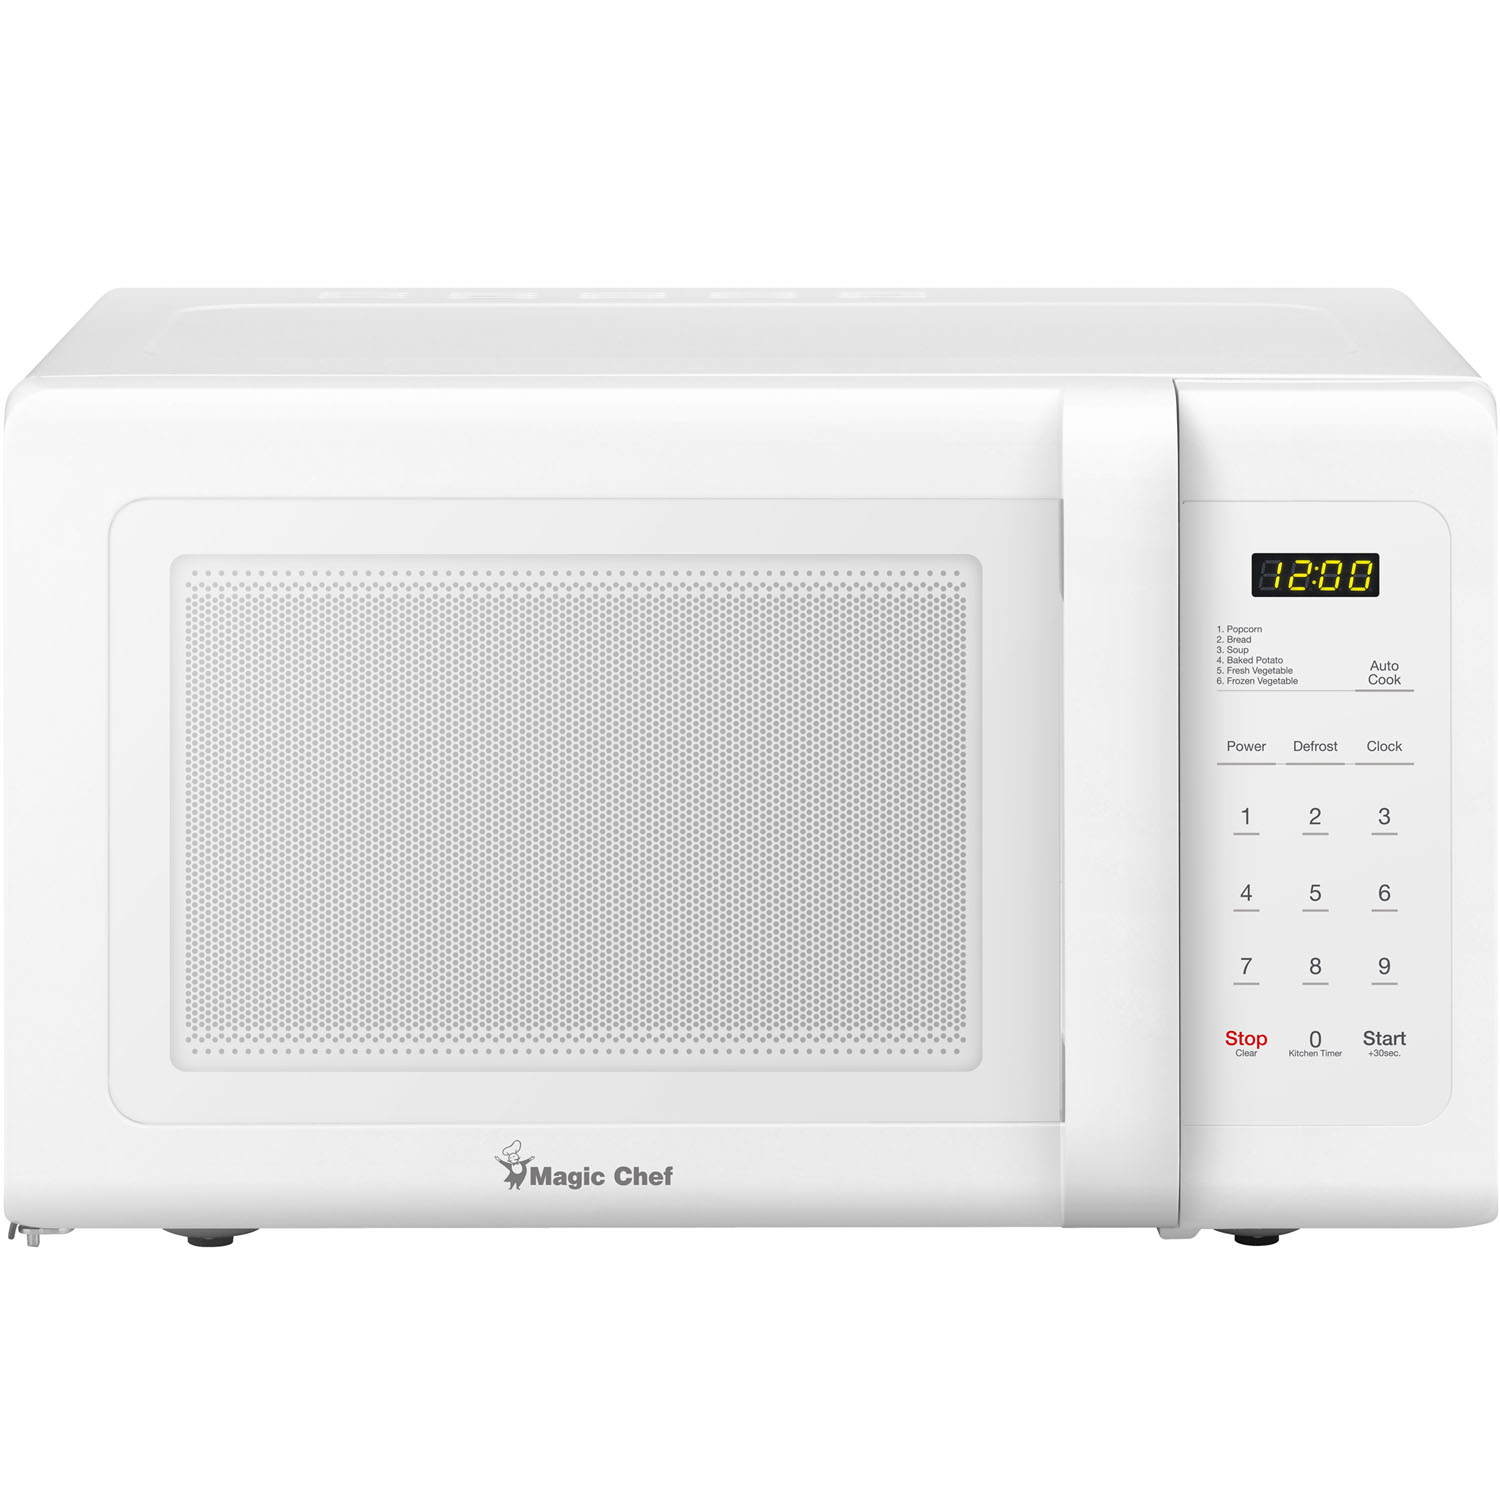 magic chef 0 9 cu ft 900w countertop microwave oven in white